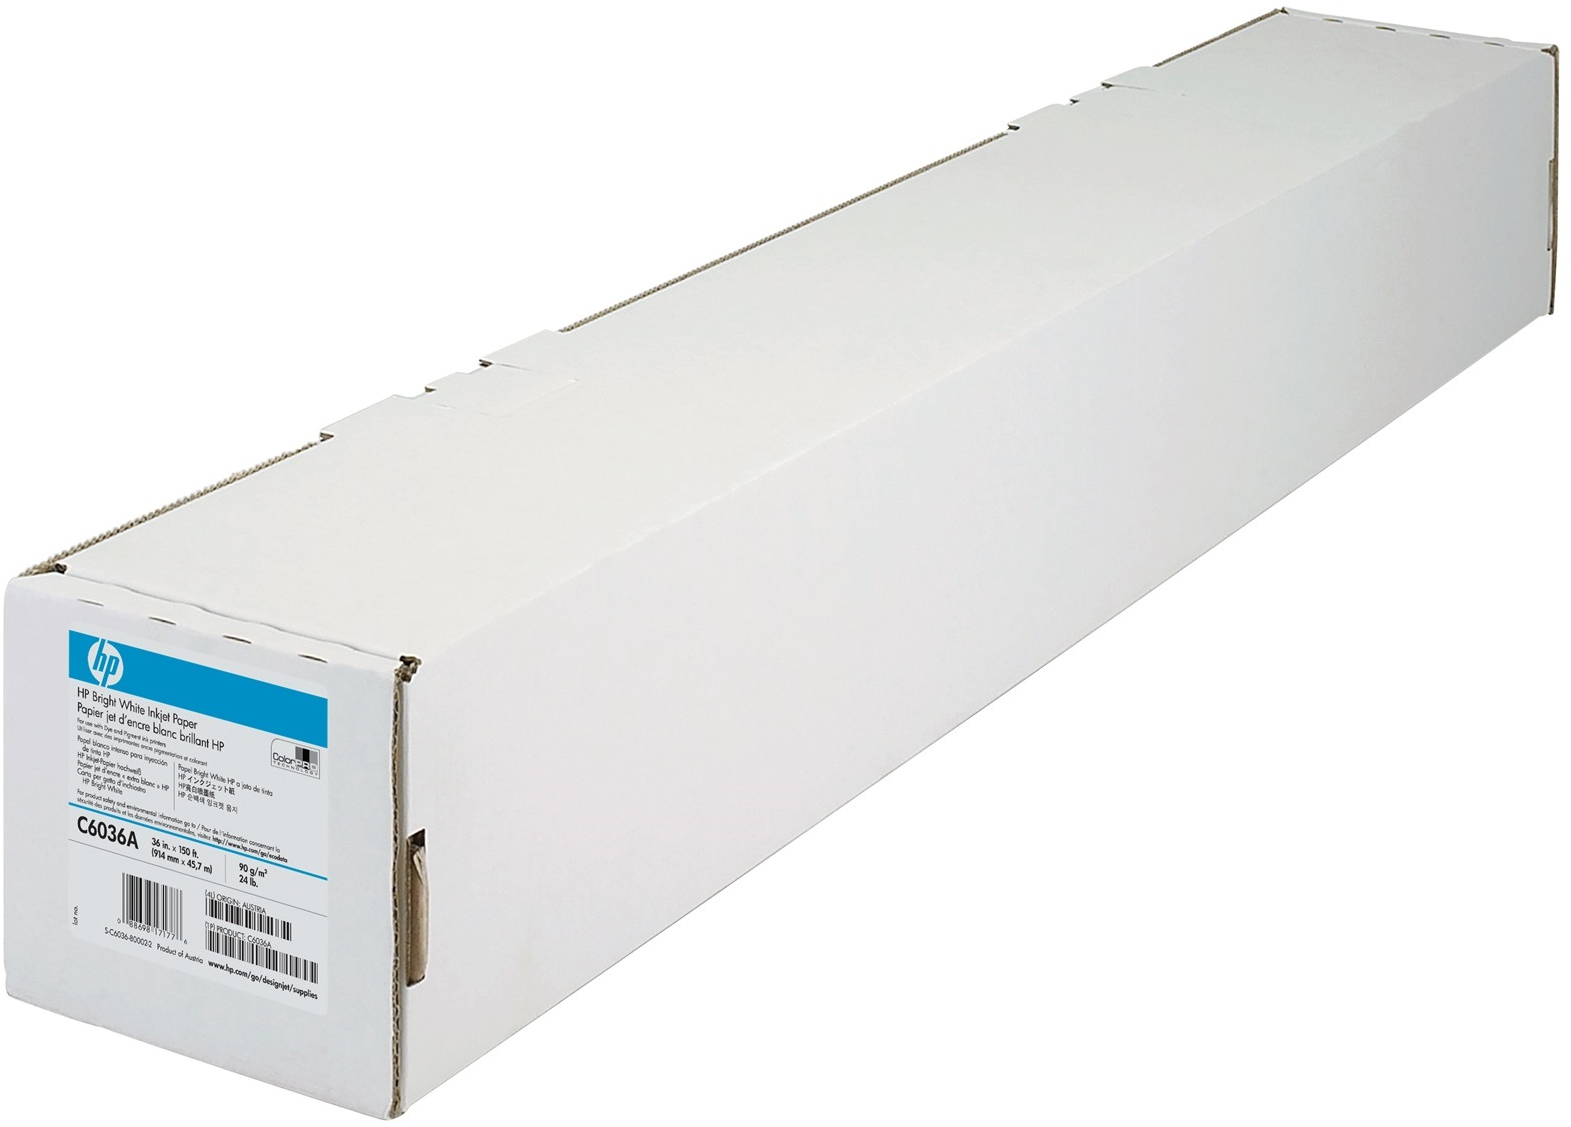 HP Bright White Inkjet Paper rol 36 Inch wit